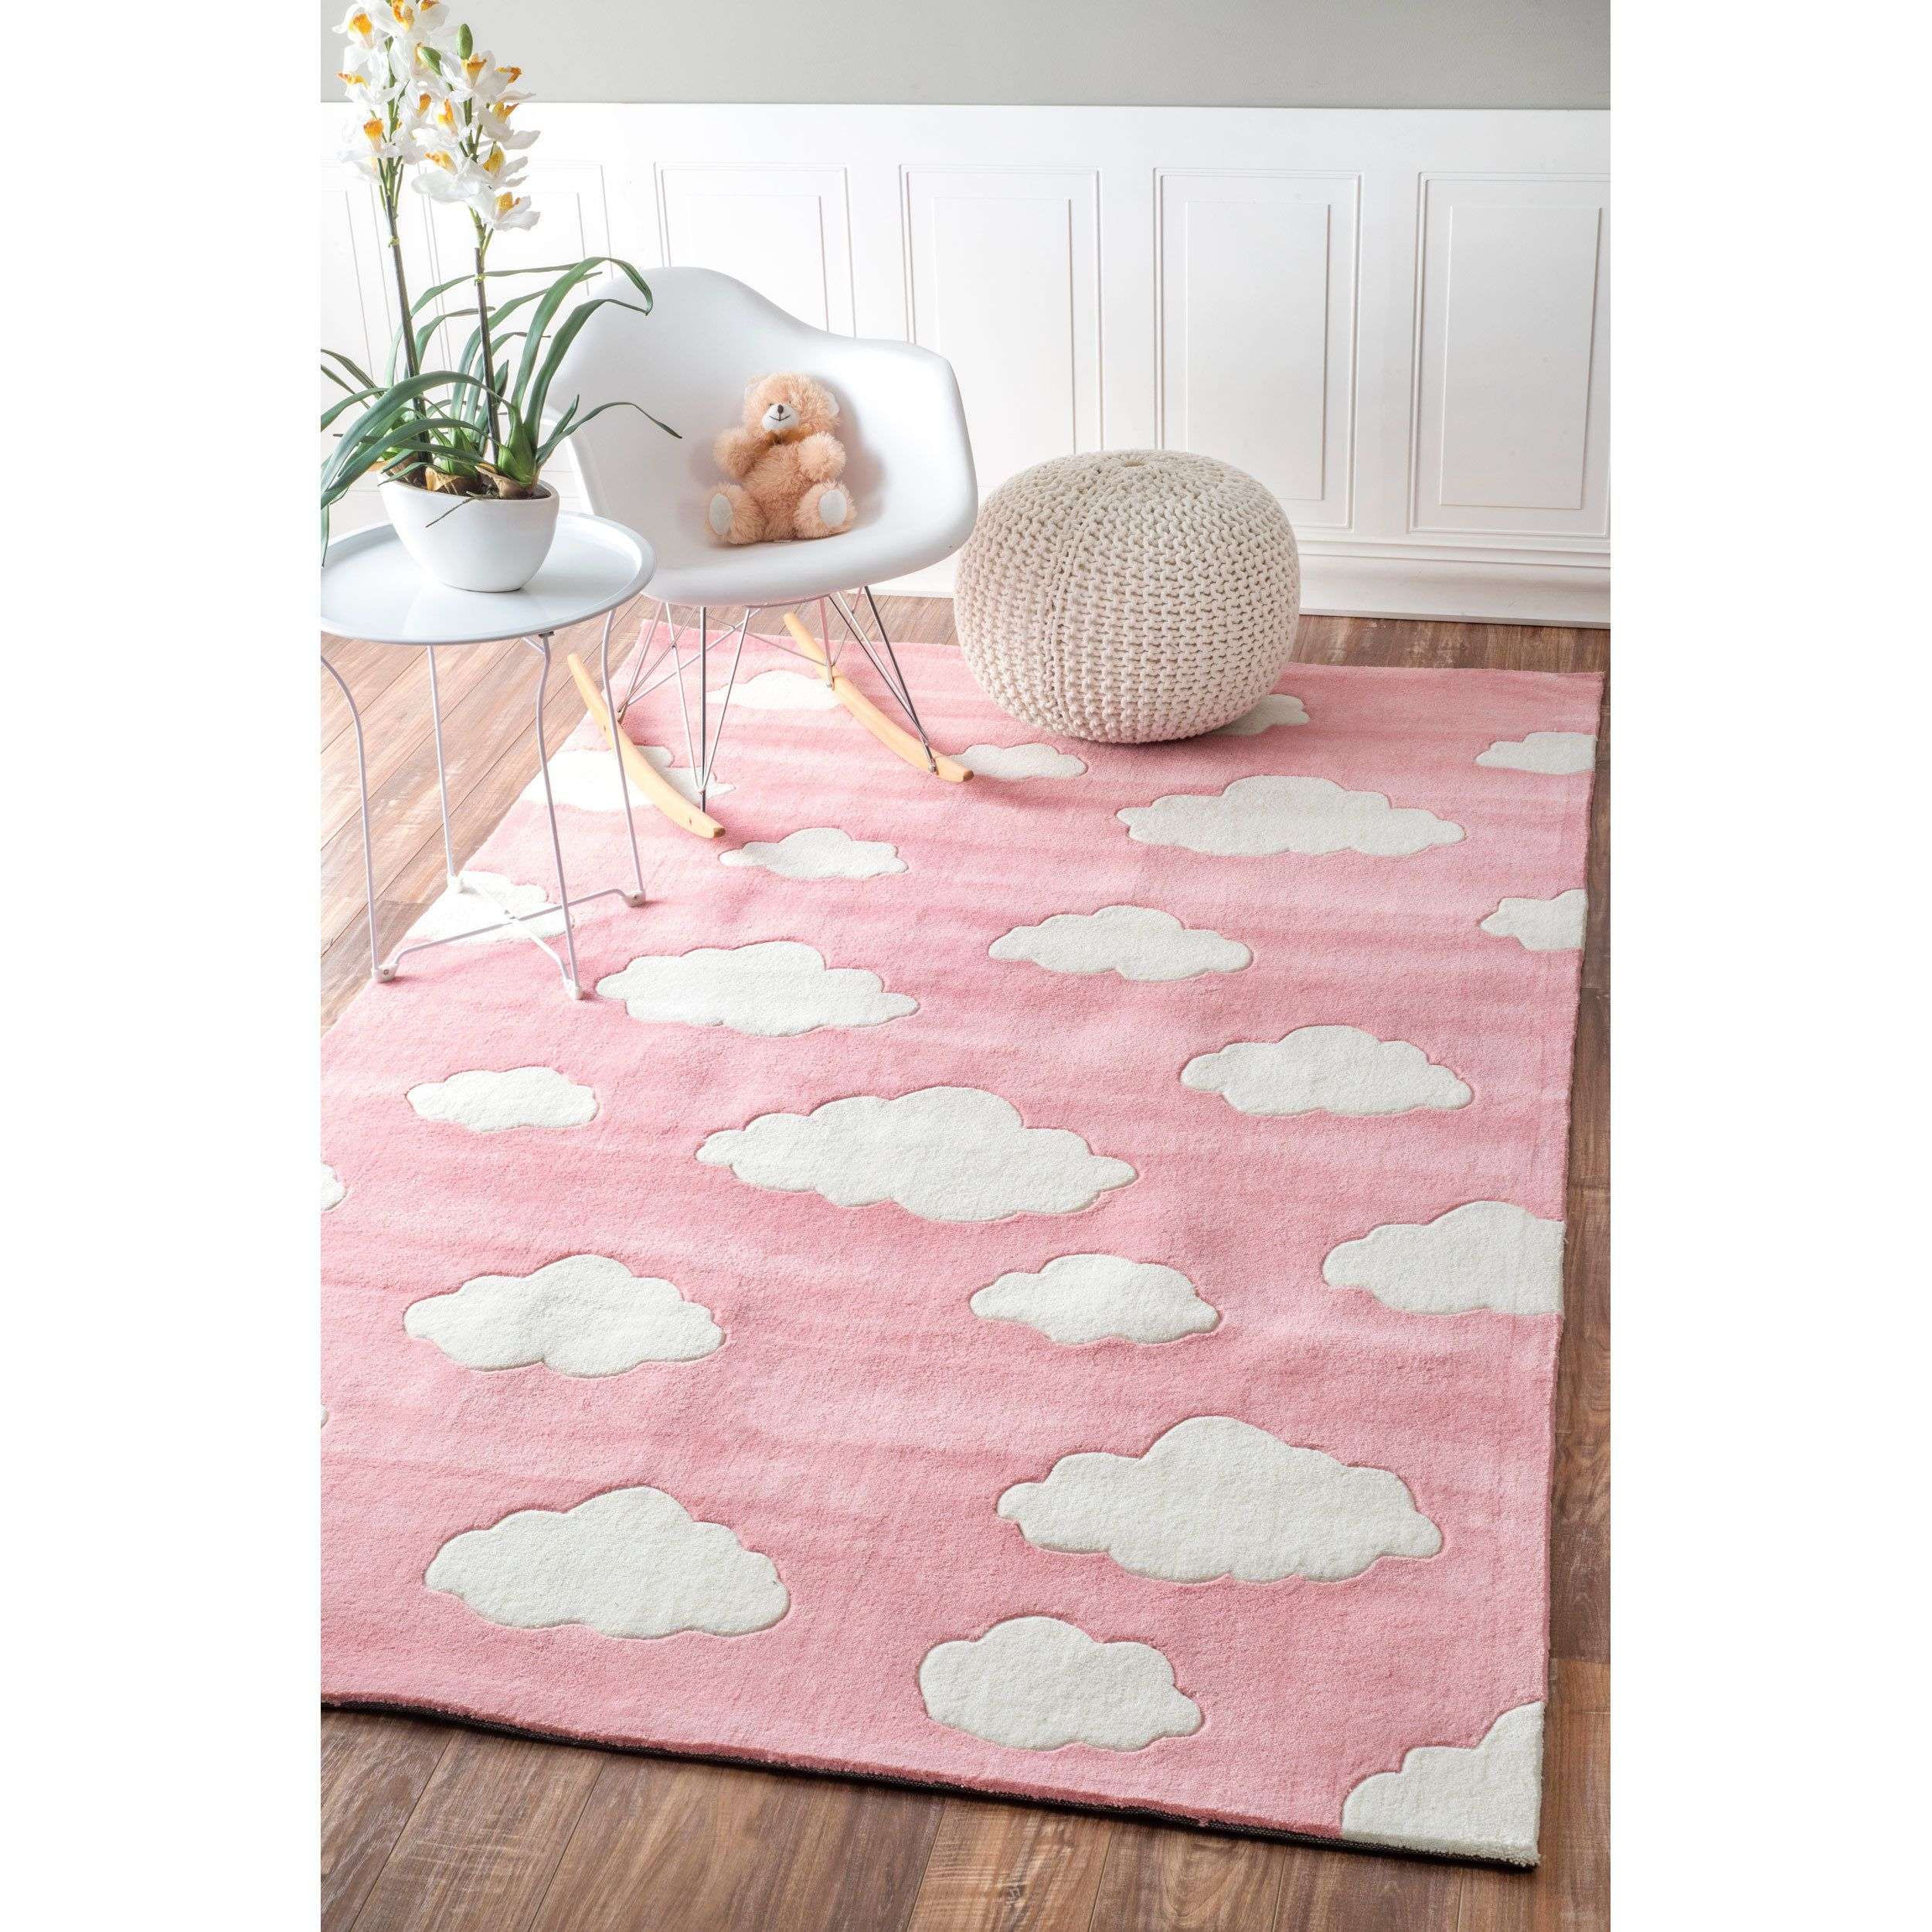 ideas pink image of option round combine nursery rugs rug for